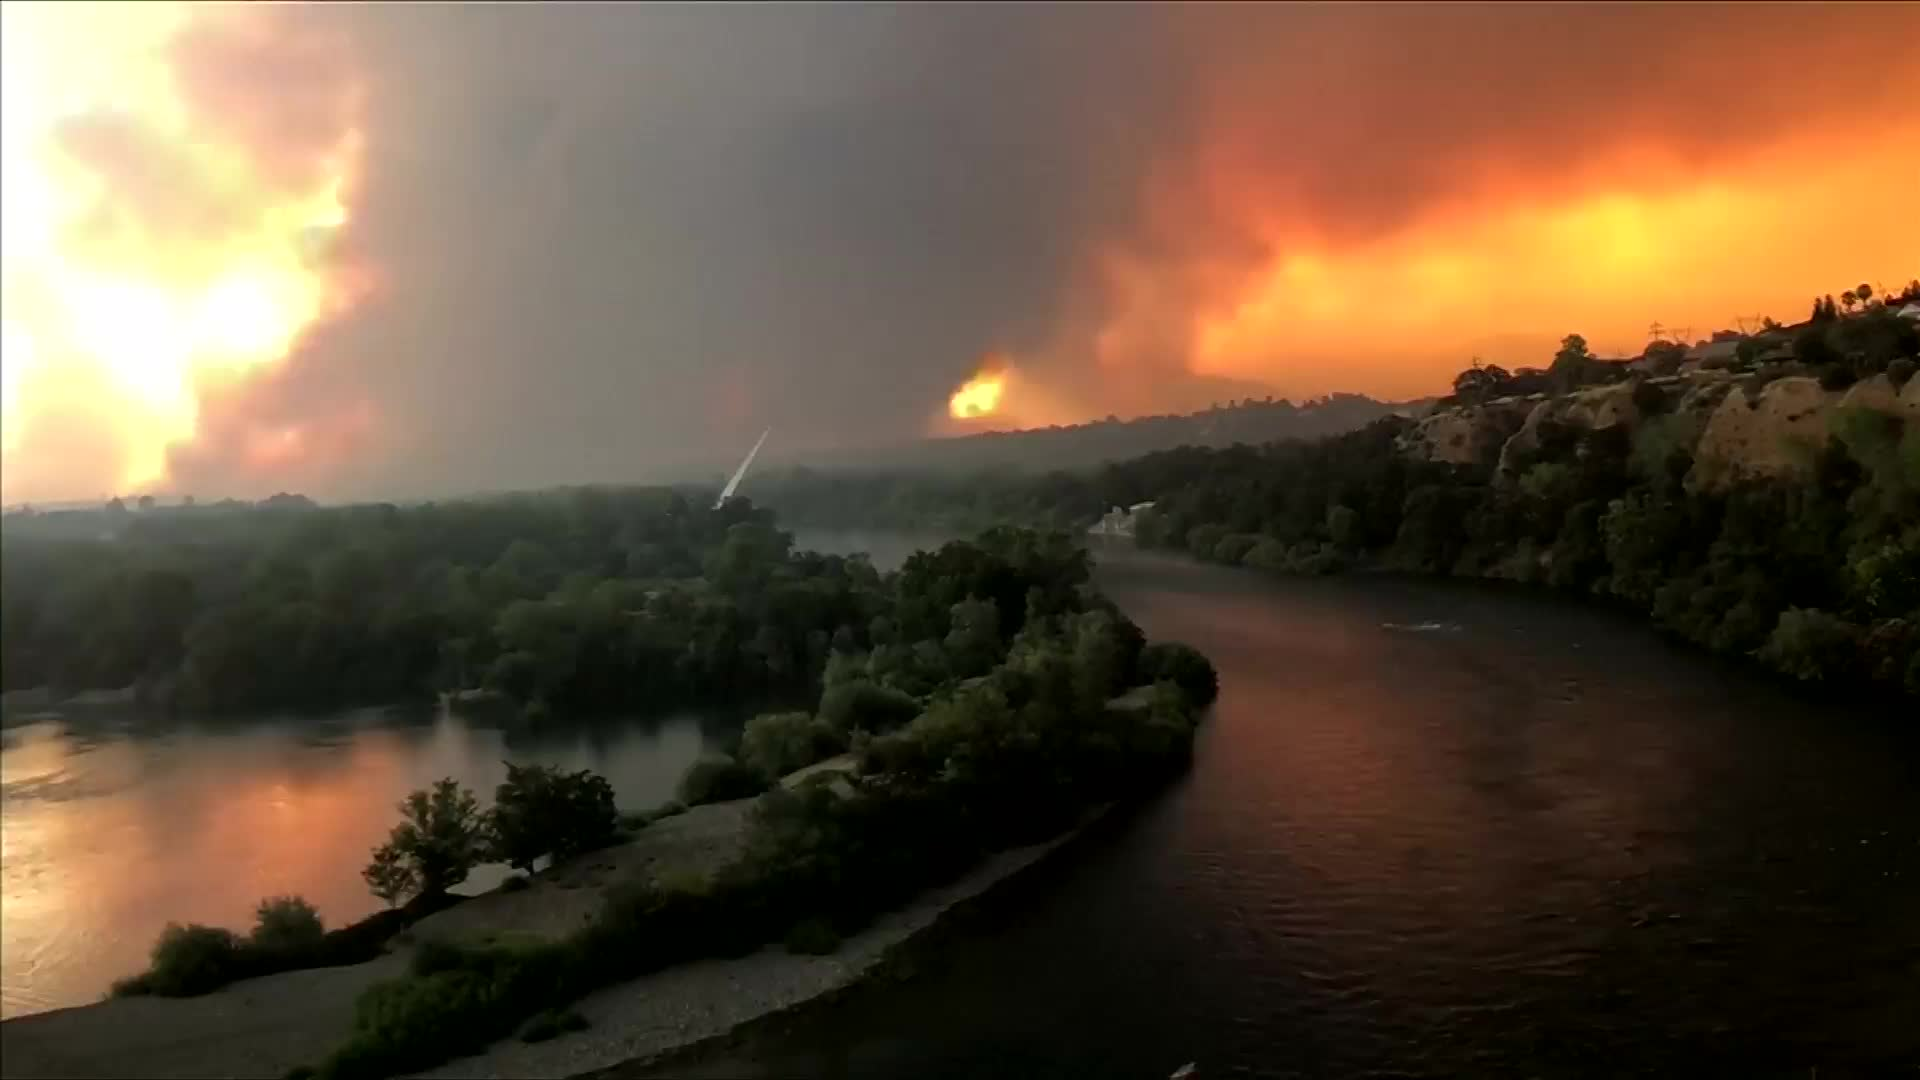 Over 3,000 people evacuated due to forest fires in California